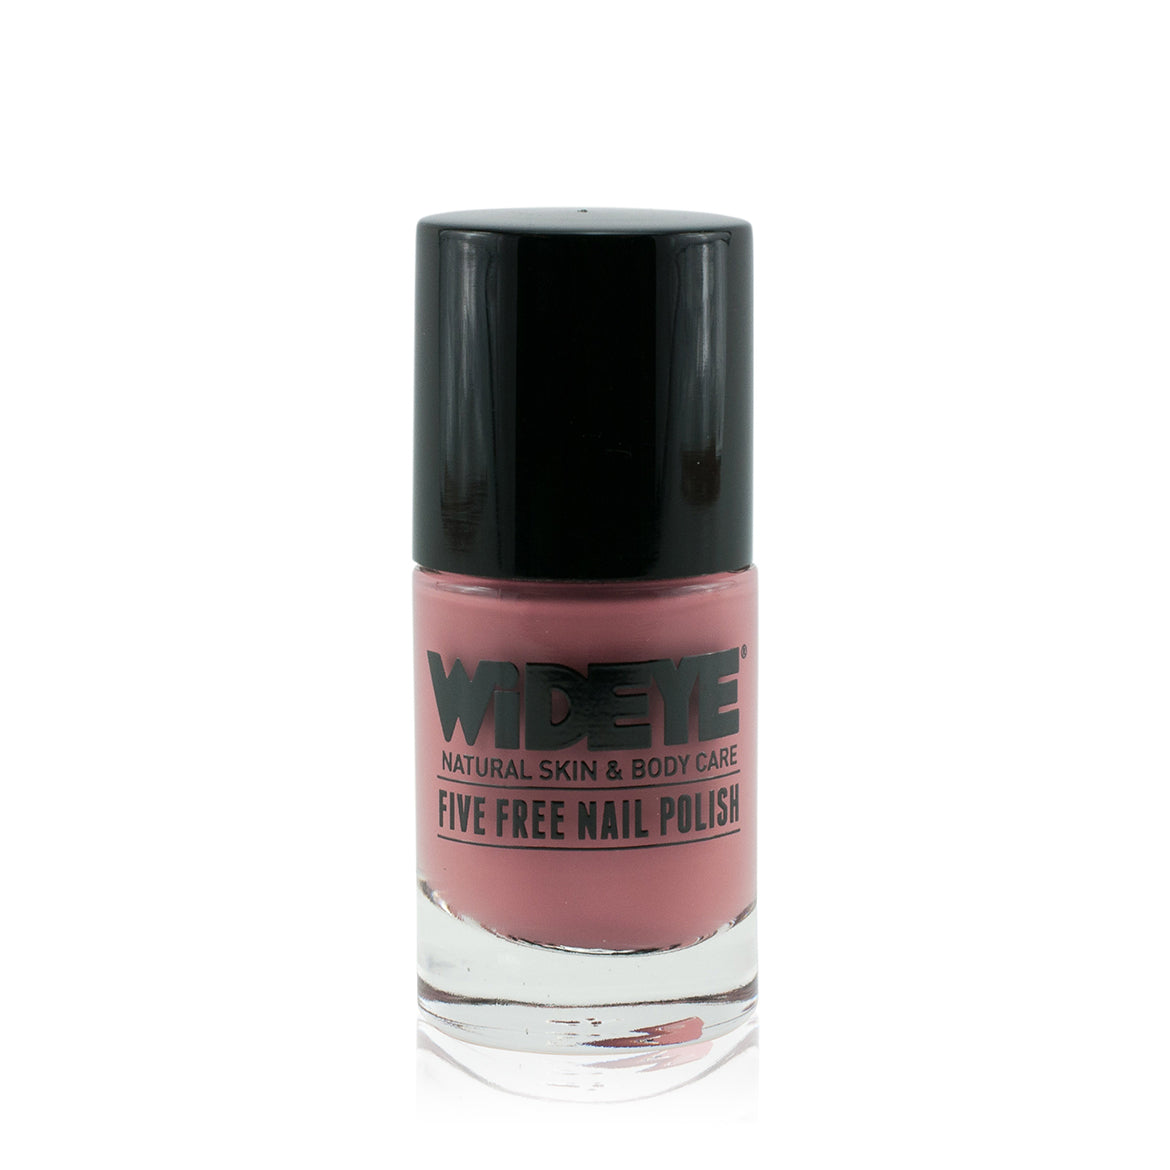 Blush pink nail varnish in glass bottle by WiDEYE.